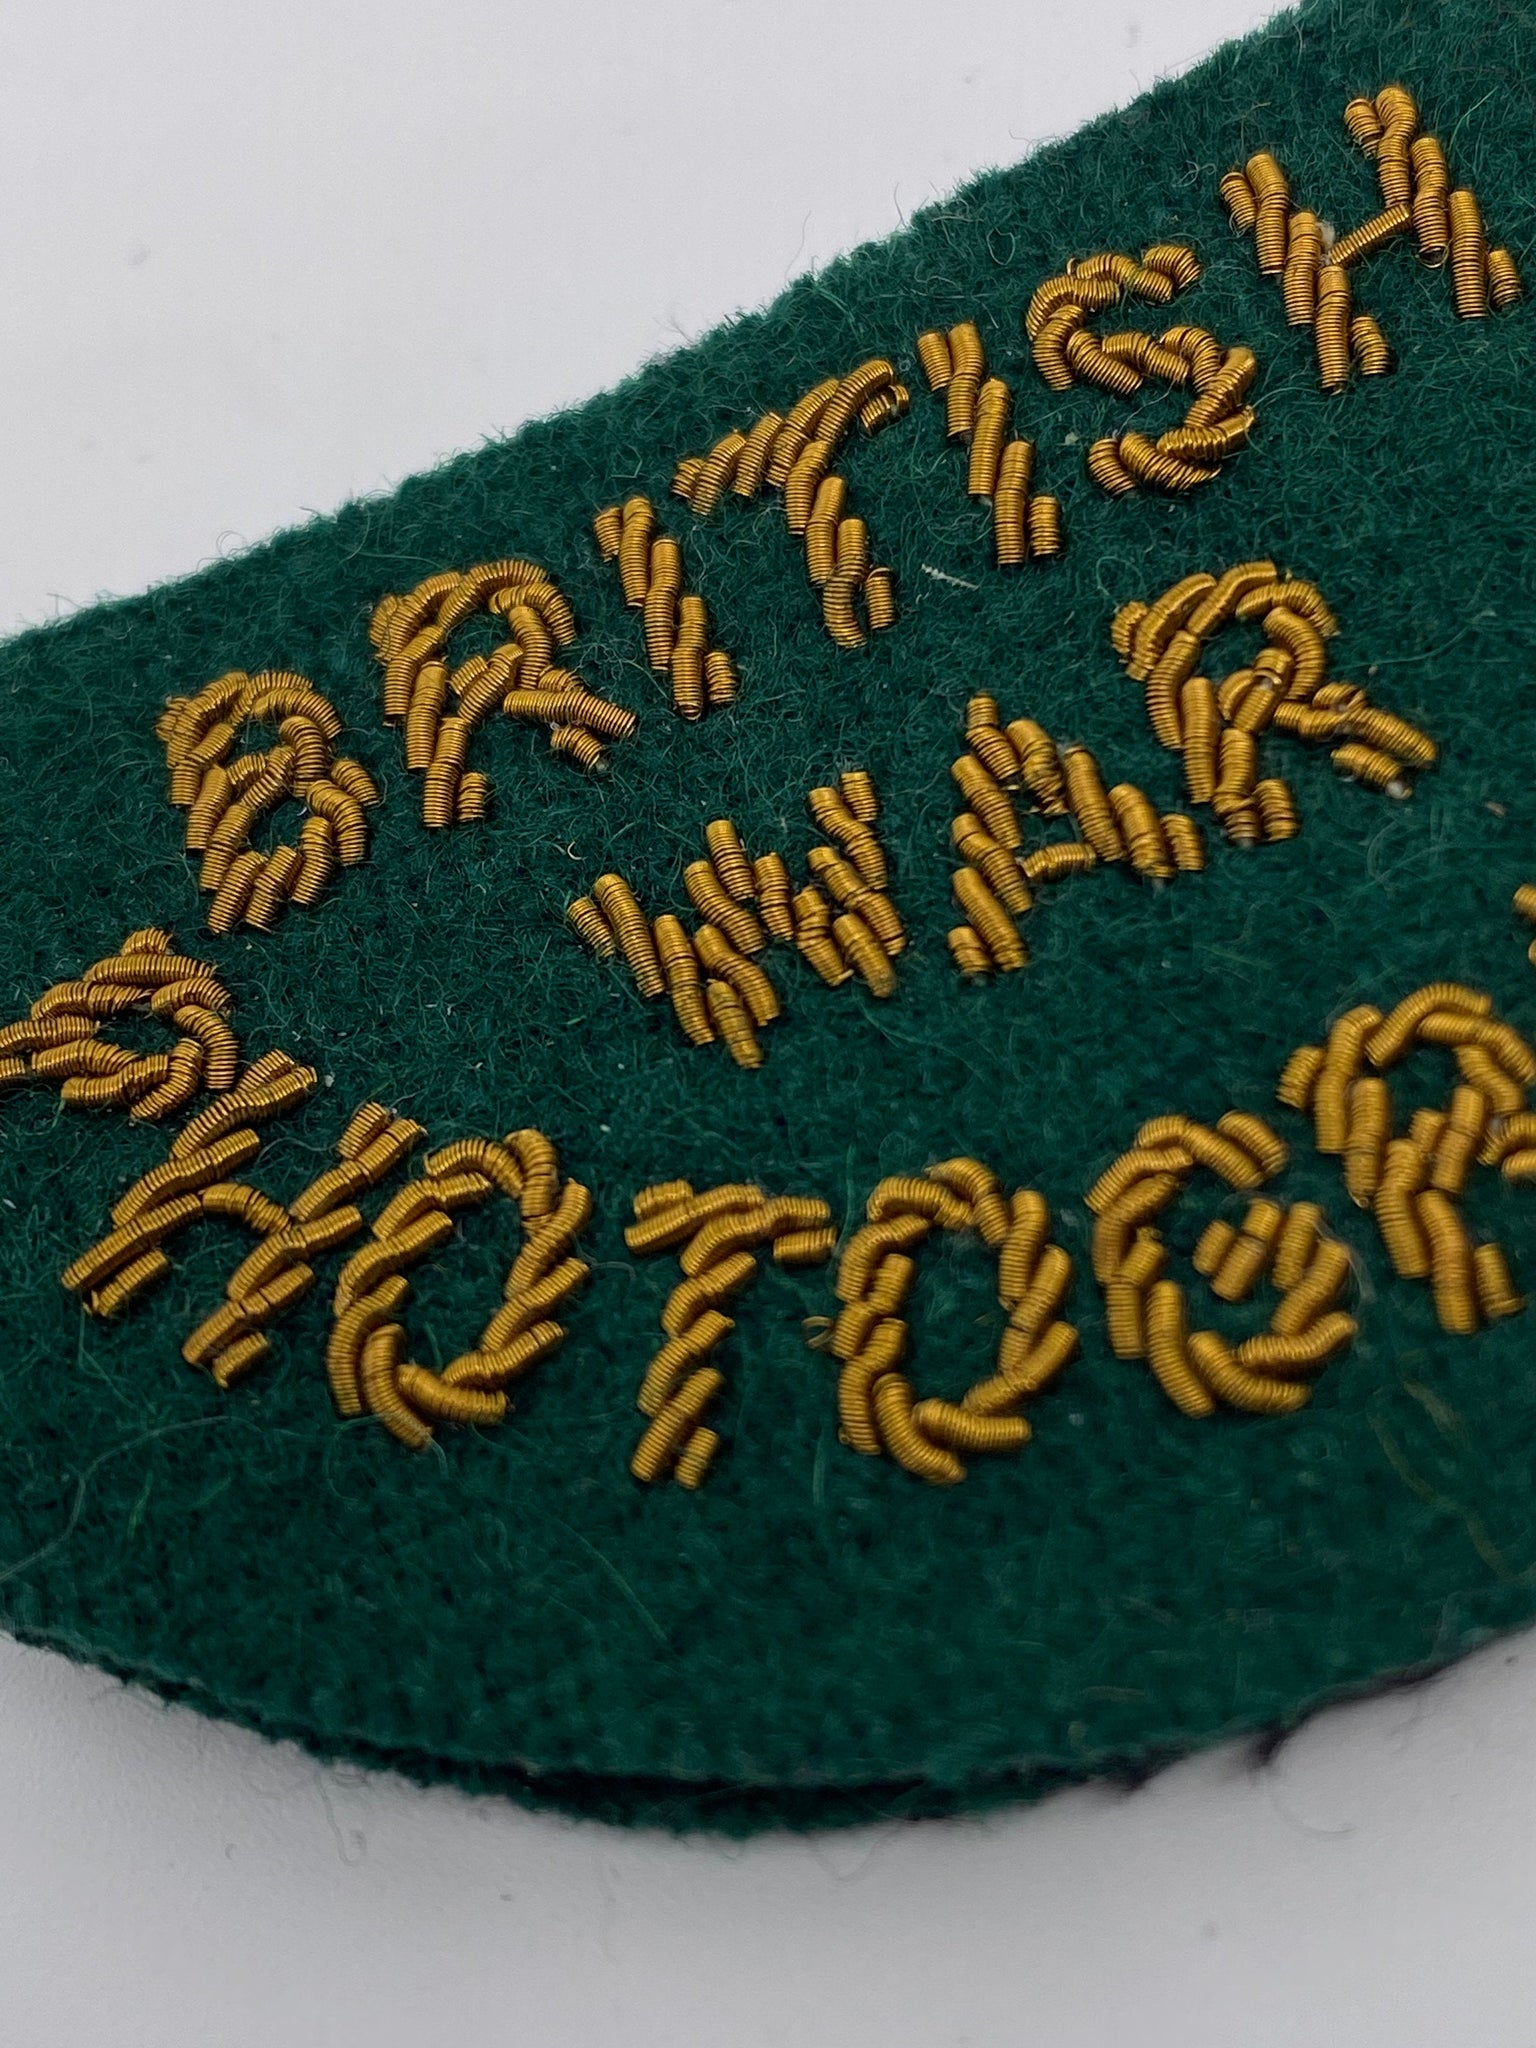 British War Photographer WWII authentic military patch for war journalists - reporters, deadstock never worn. - viceversashop